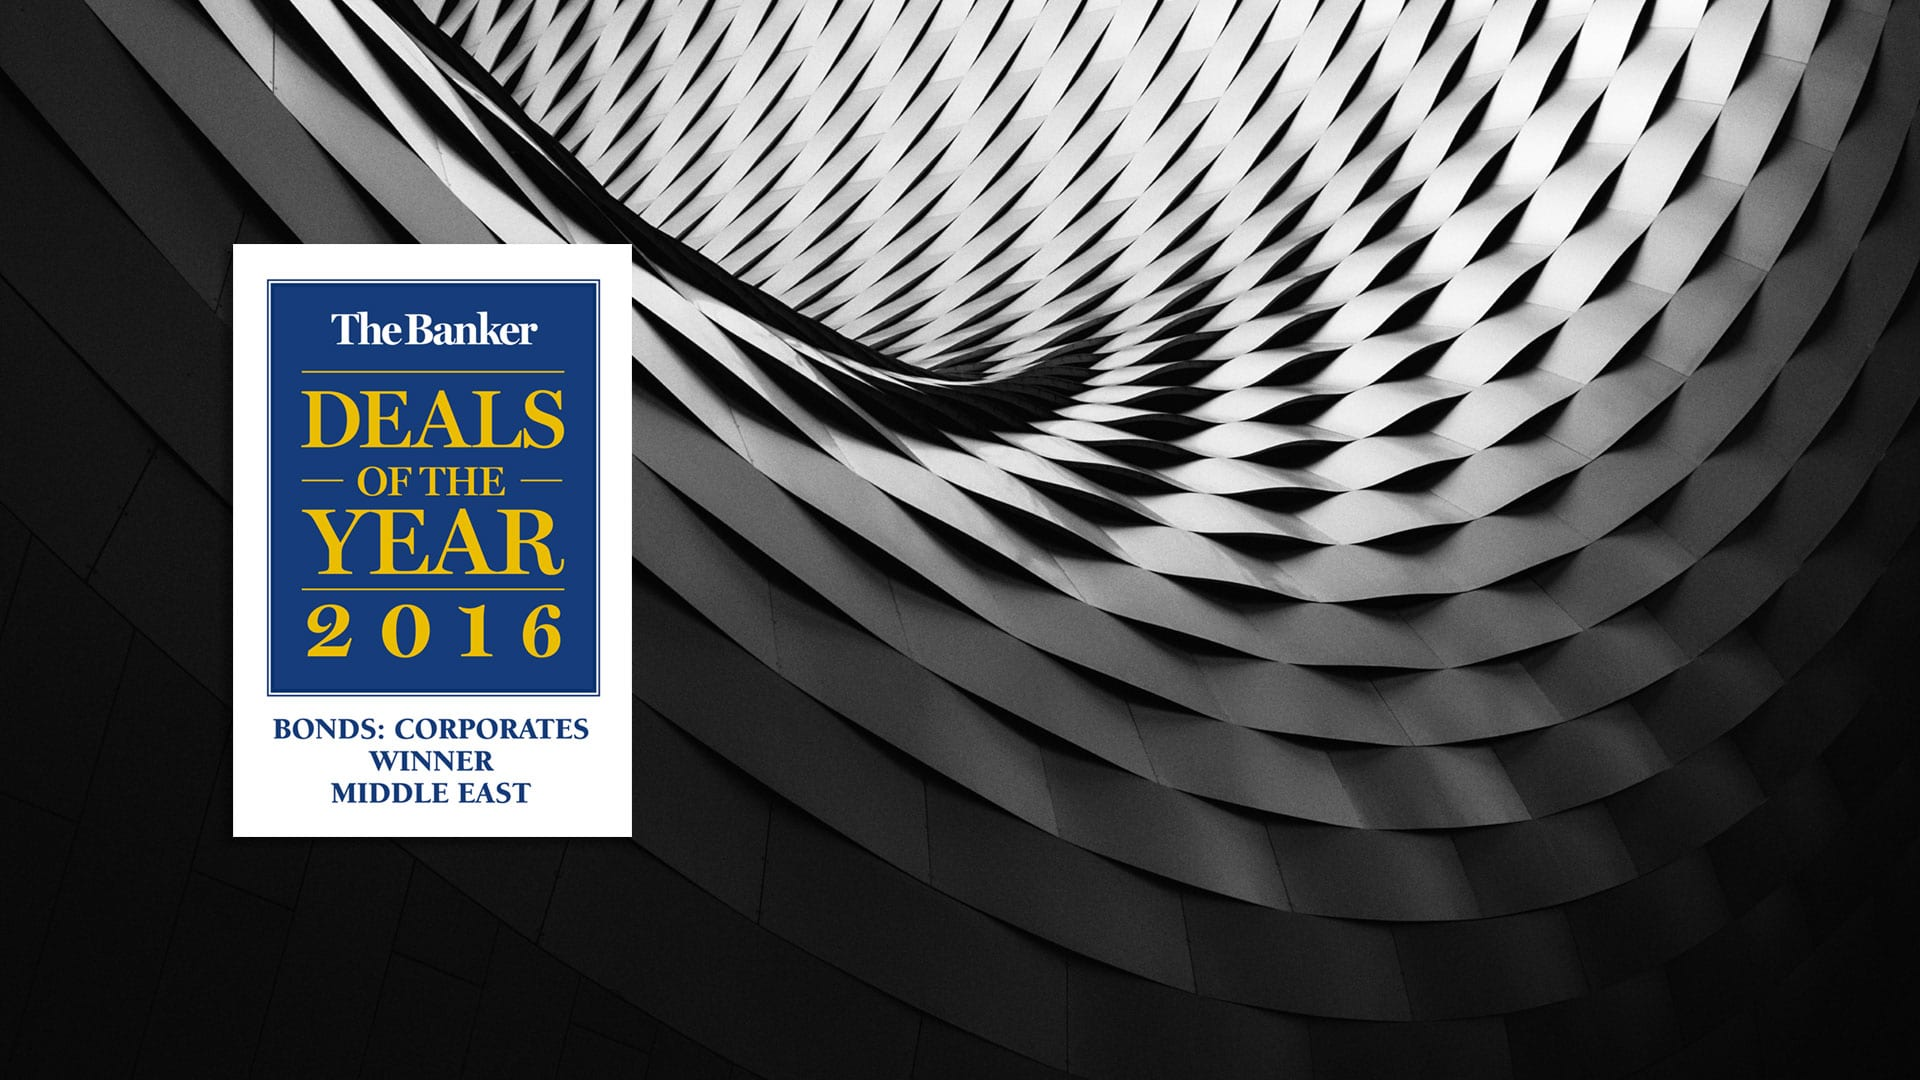 NBK Capital awarded the Deal of the Year 2016 – Bonds: Corporate Winner from The Banker Magazine